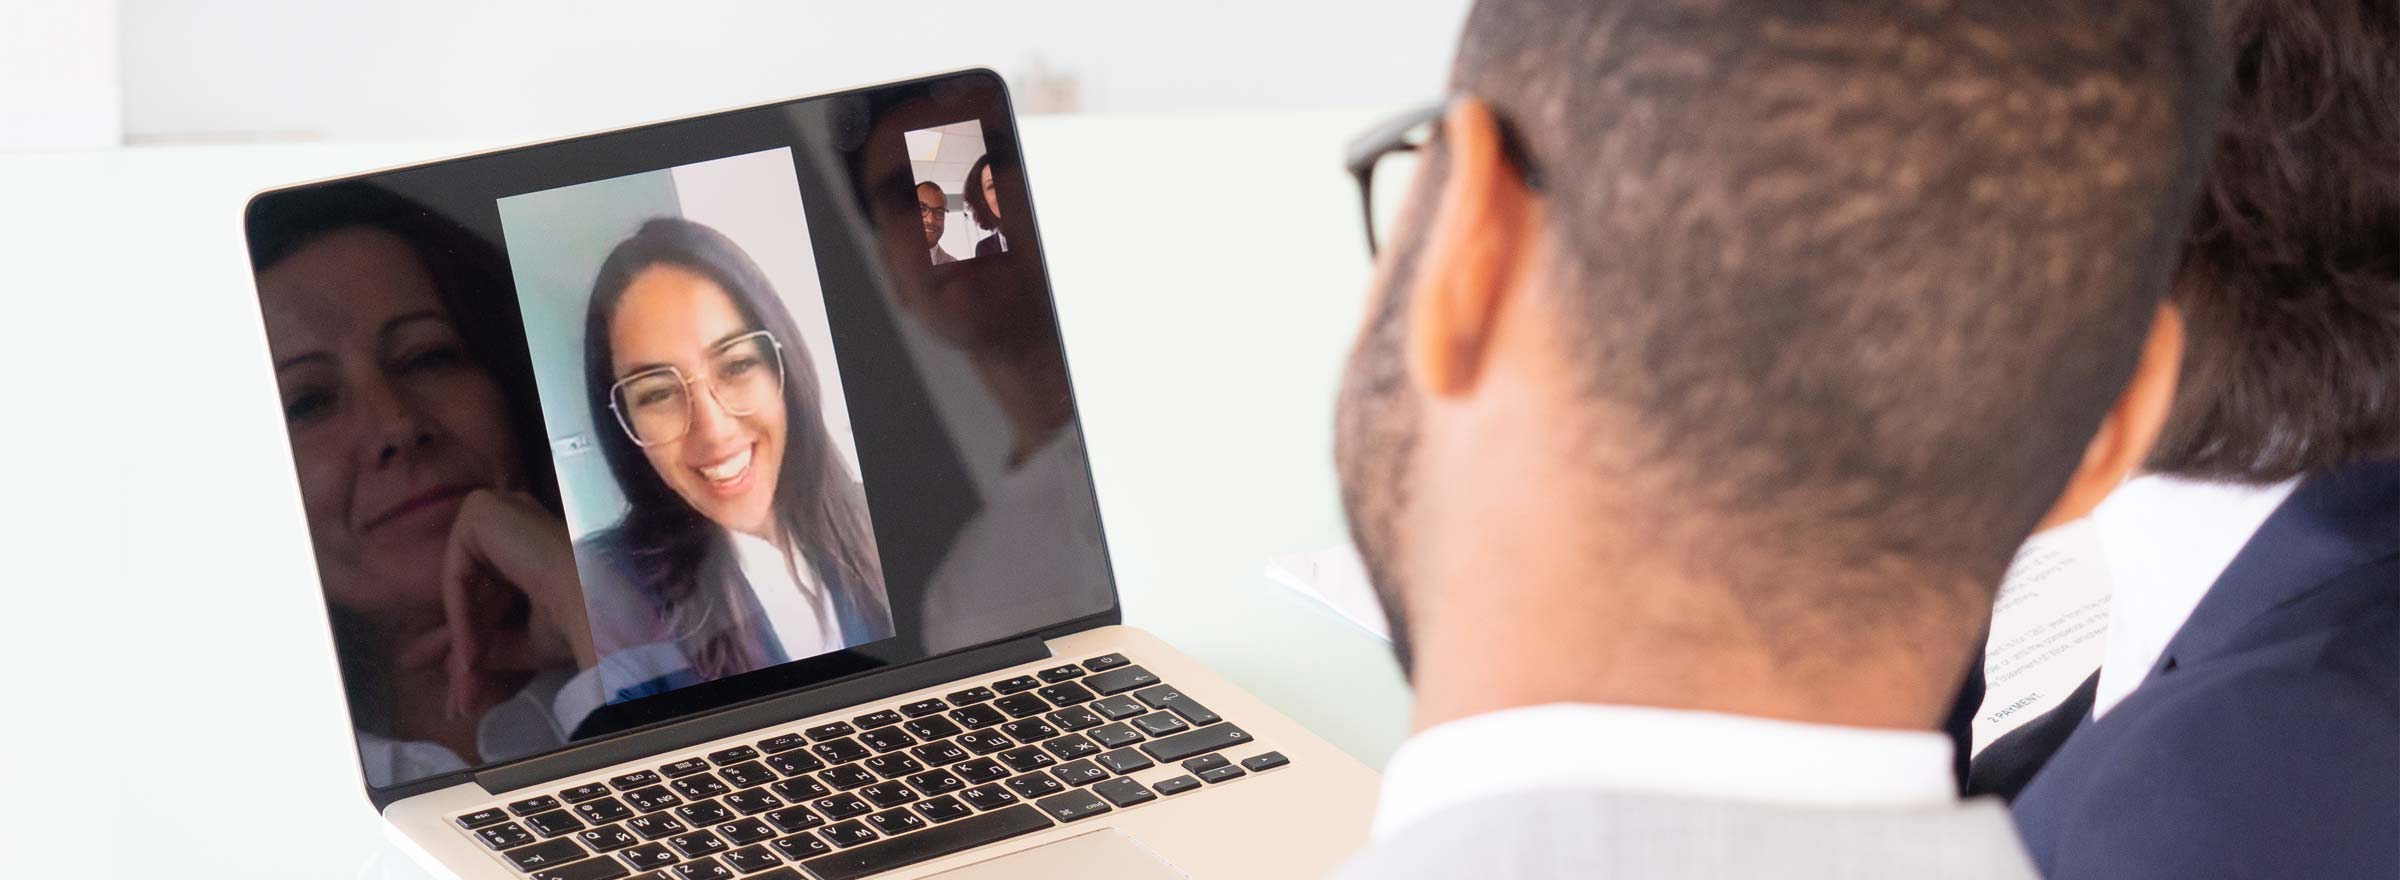 two people having a video conference with a third